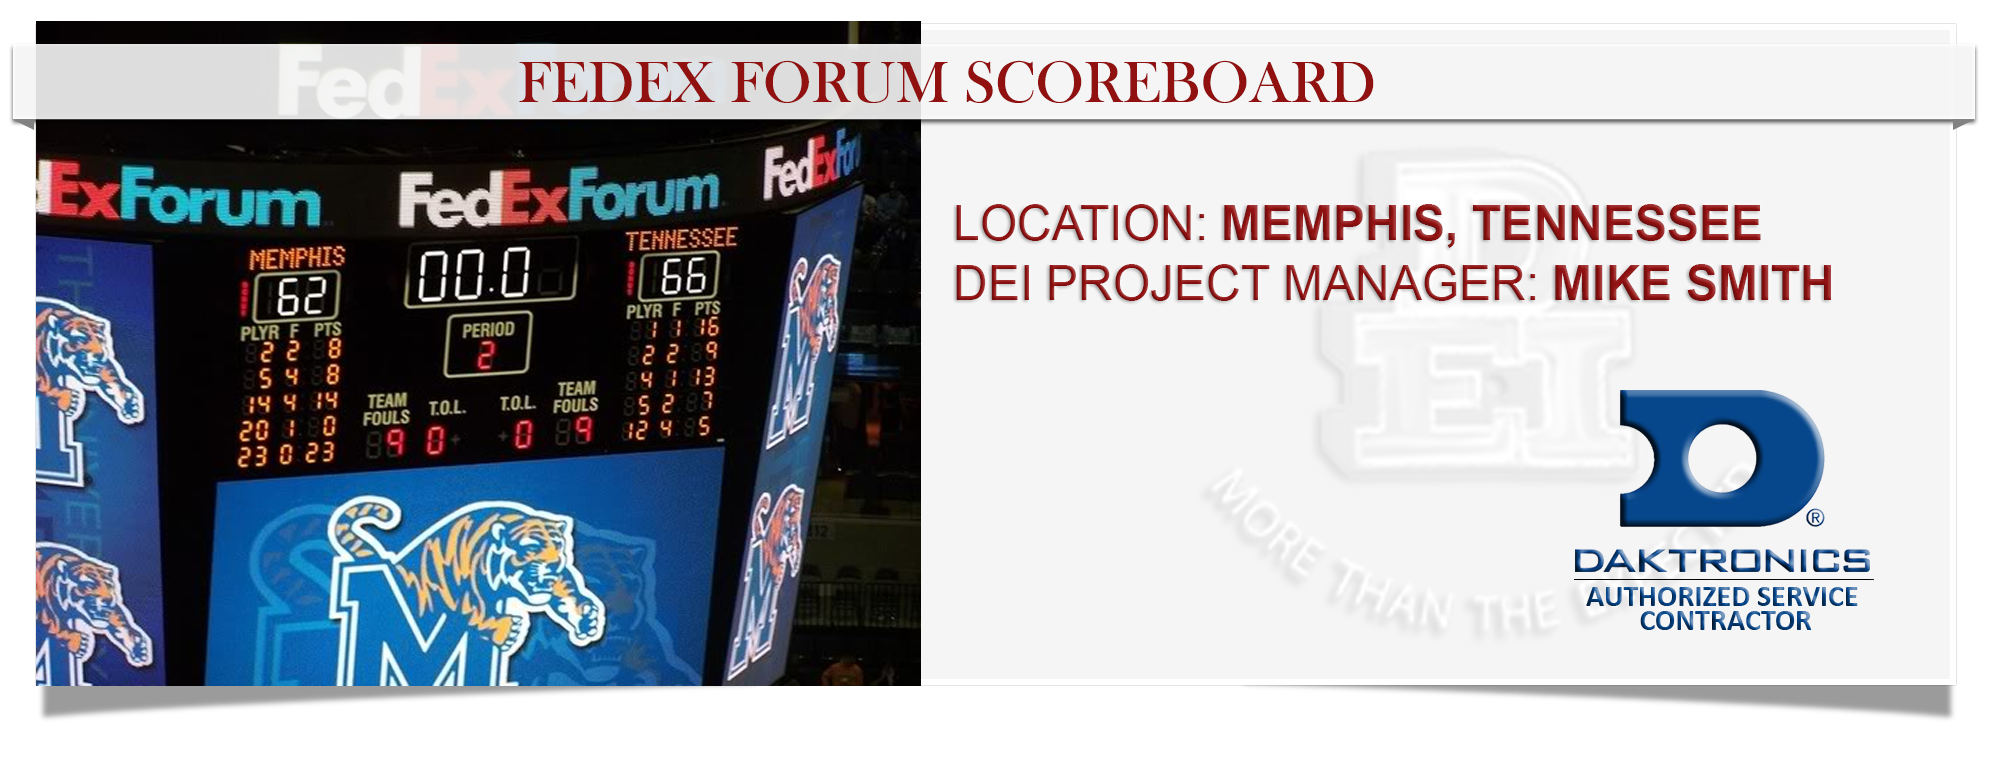 FED EX FORUM SCOREBOARD